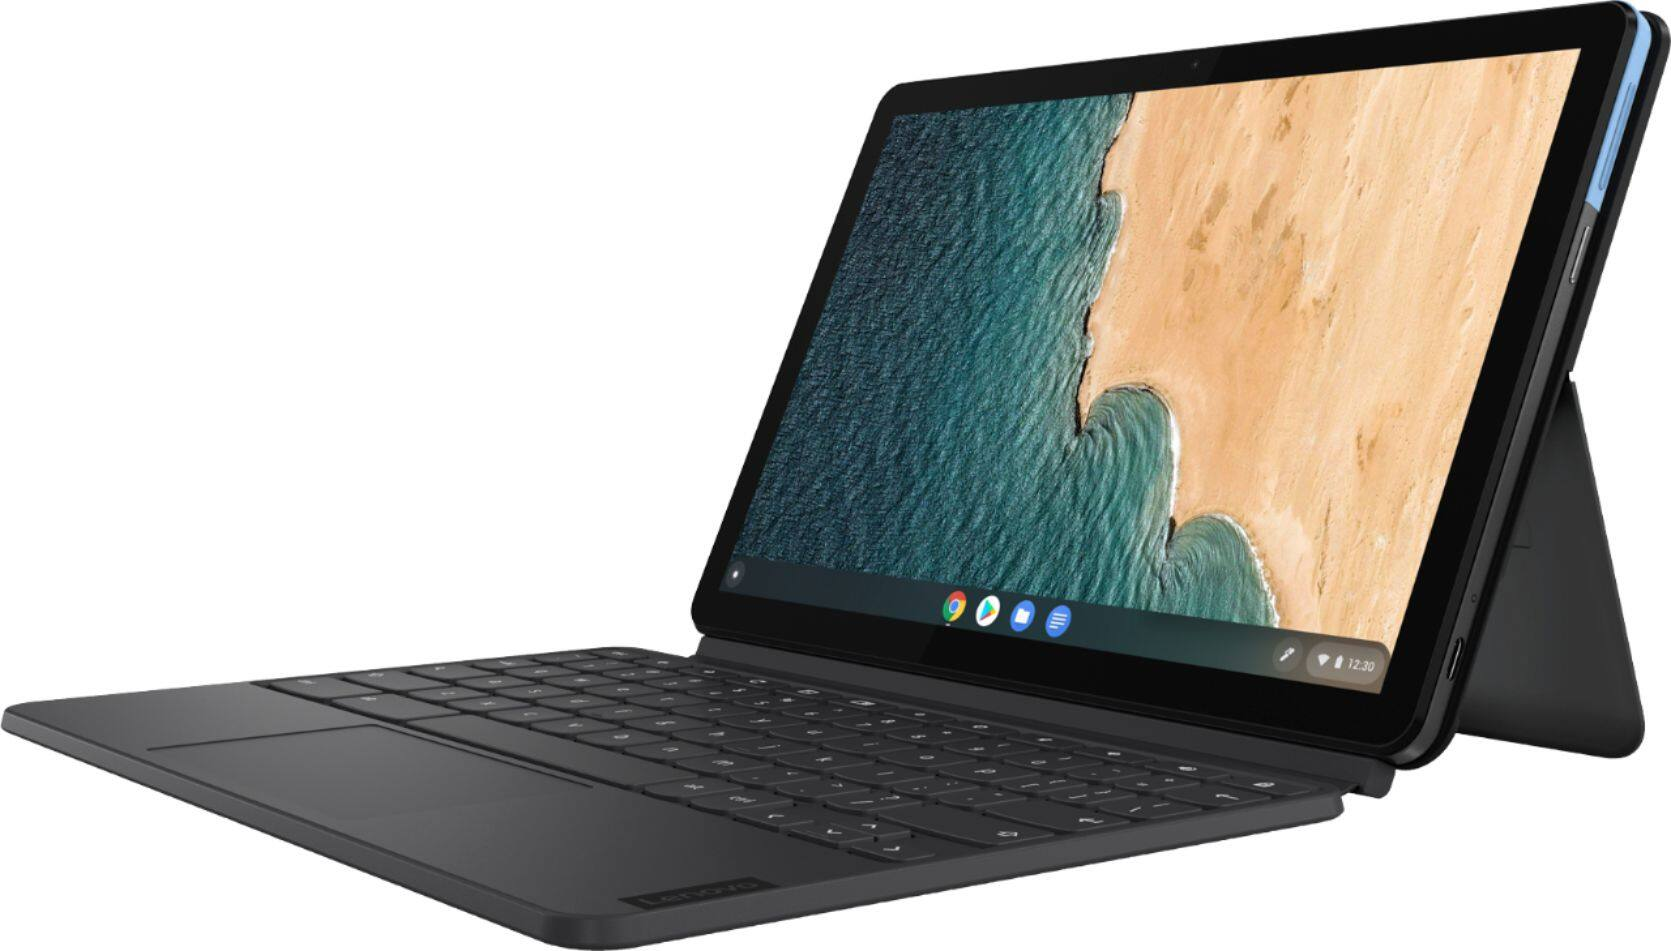 Lenovo Duet Chromebook (10.1, 128GB with Keyboard) - Open-Box Excellent Certified - $262.99 shipped